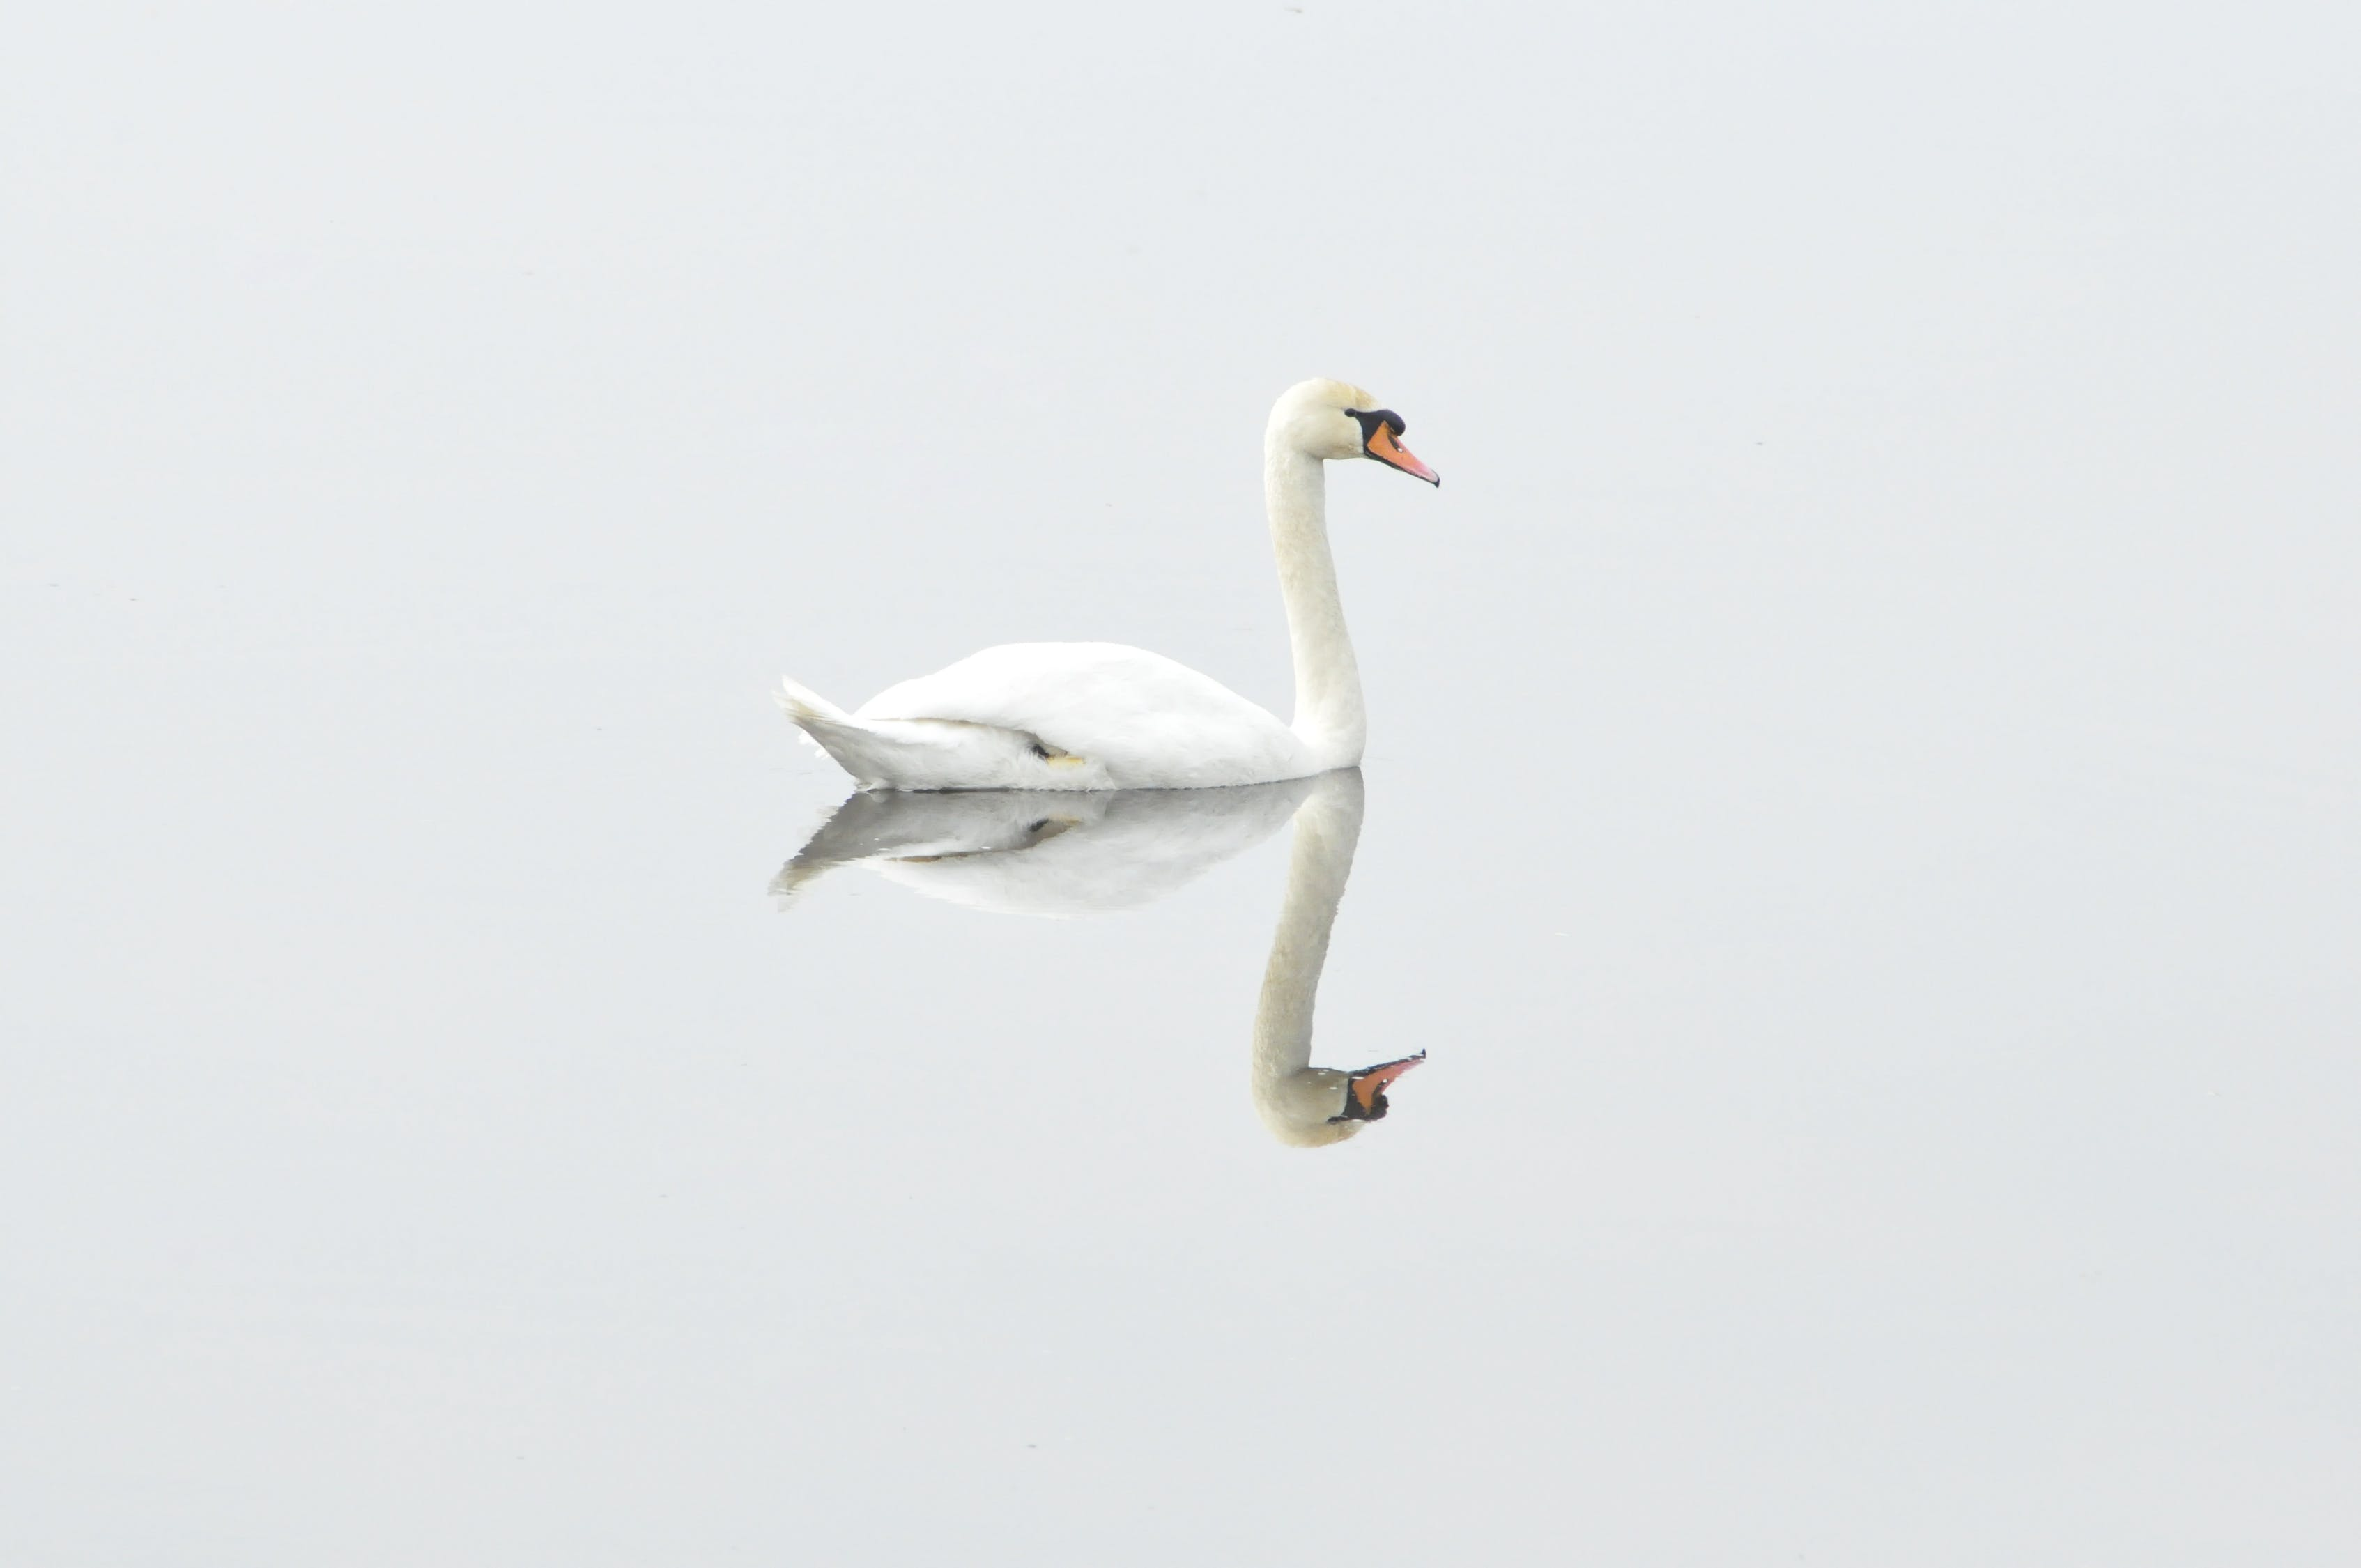 Reflection of Swan on Body of Water